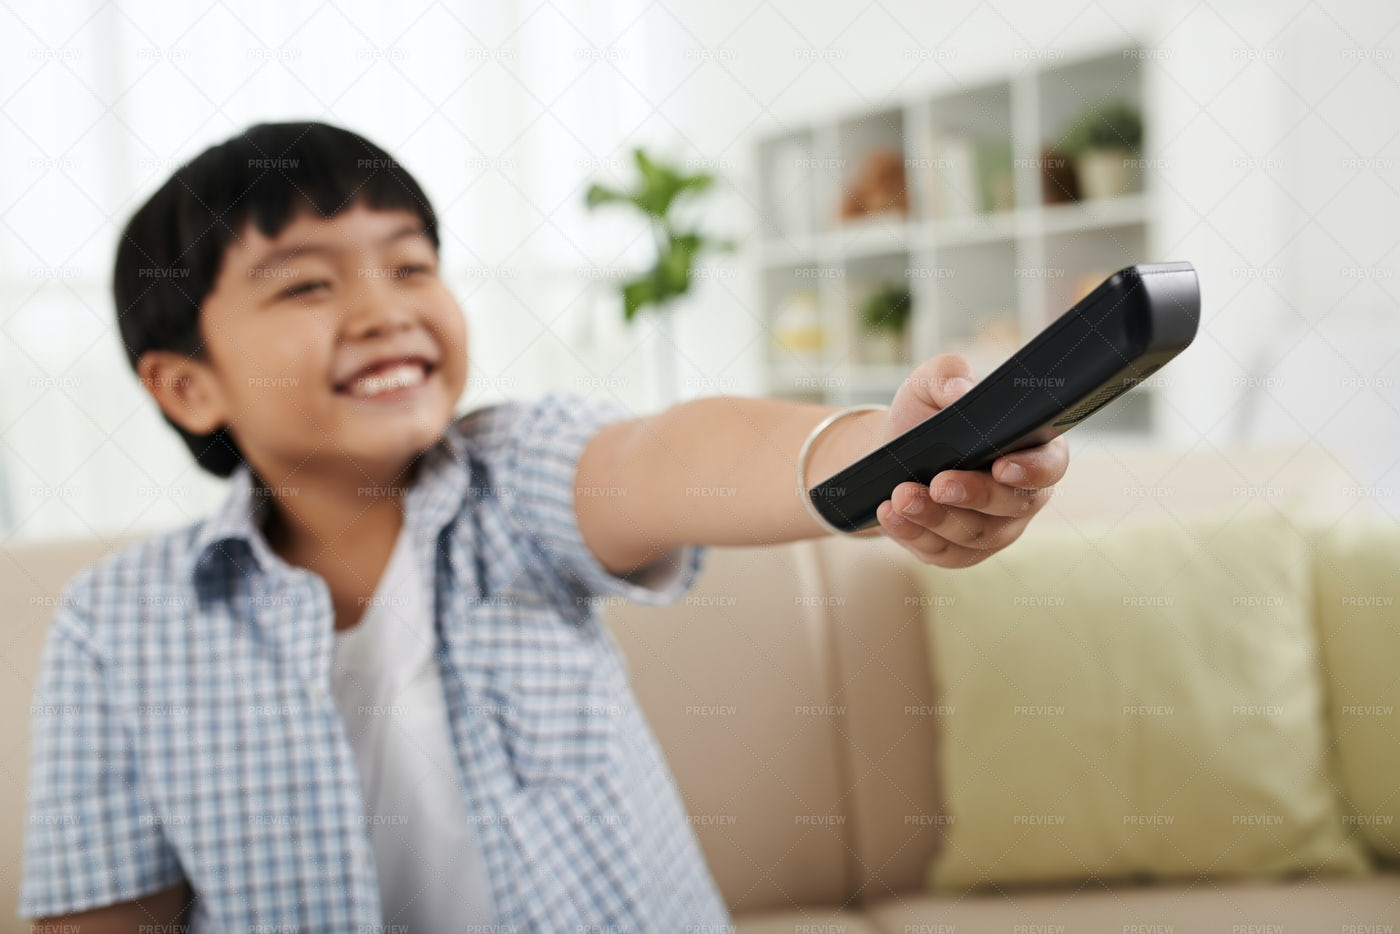 Changing Channel: Stock Photos